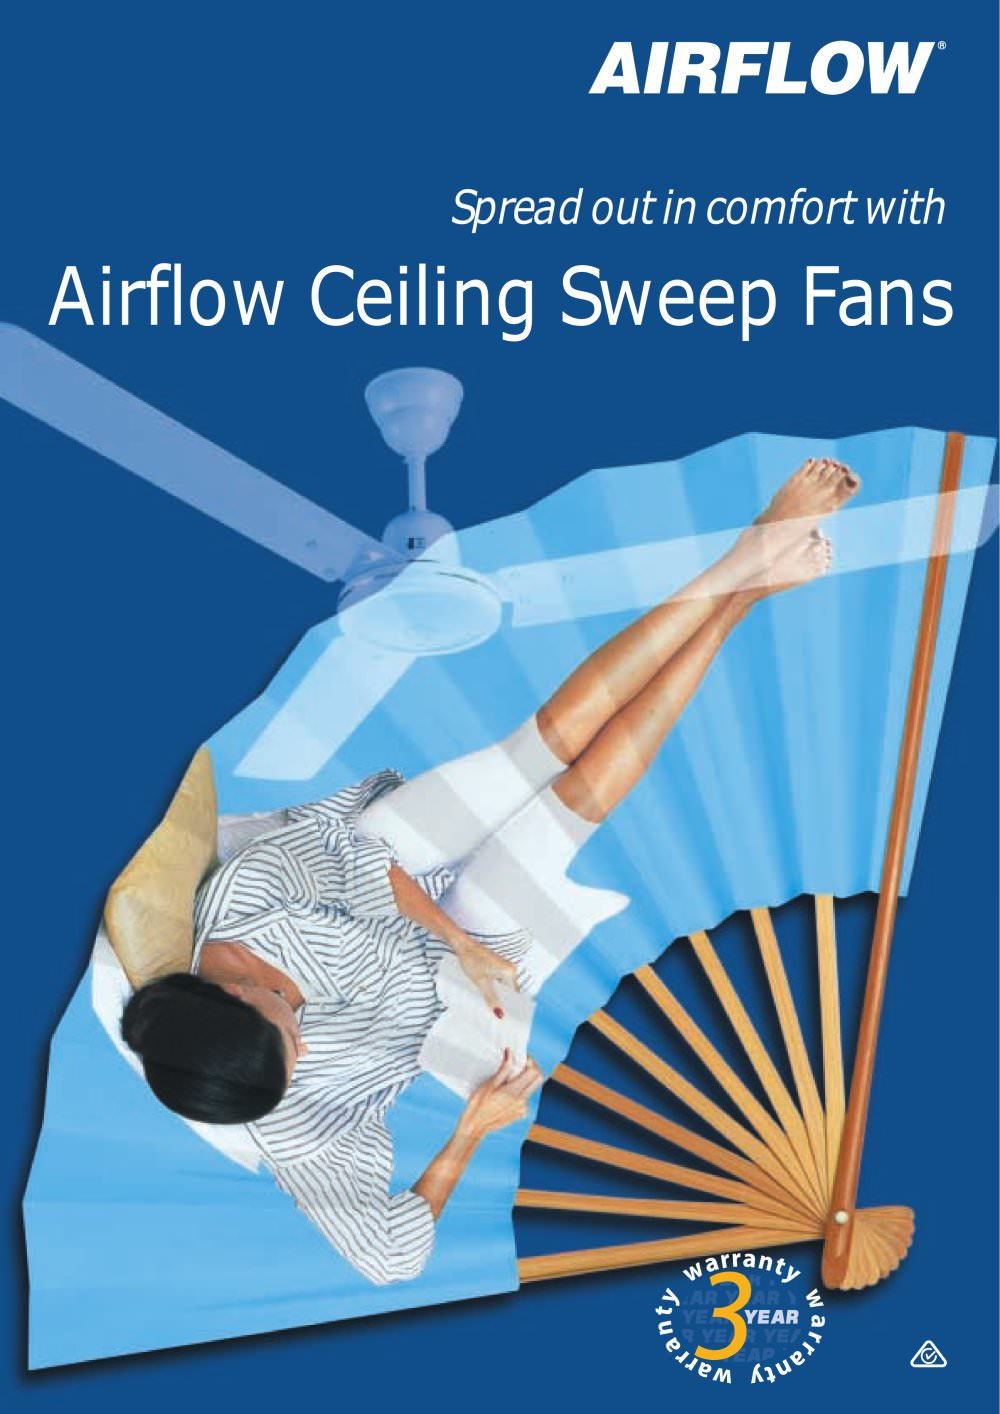 Airflow eiling sweep fans clipsal pdf catalogues documentation airflow eiling sweep fans 1 4 pages aloadofball Image collections